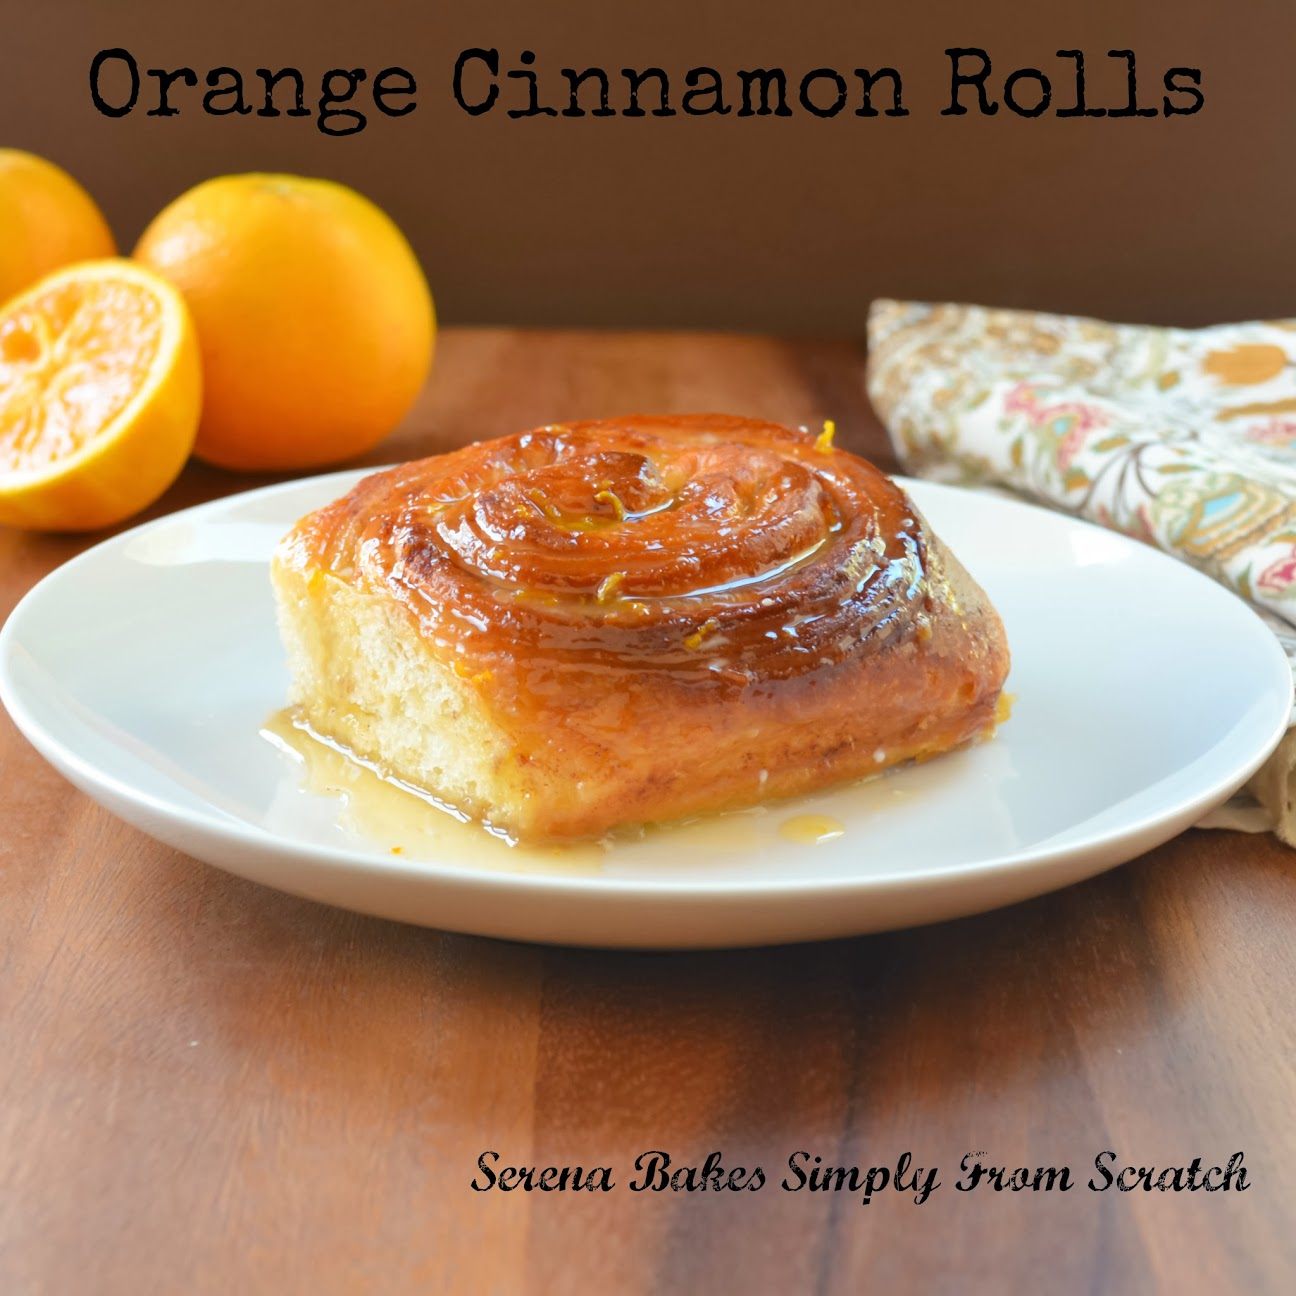 Citrus-Orange-Cinnamon-Rolls.jpg